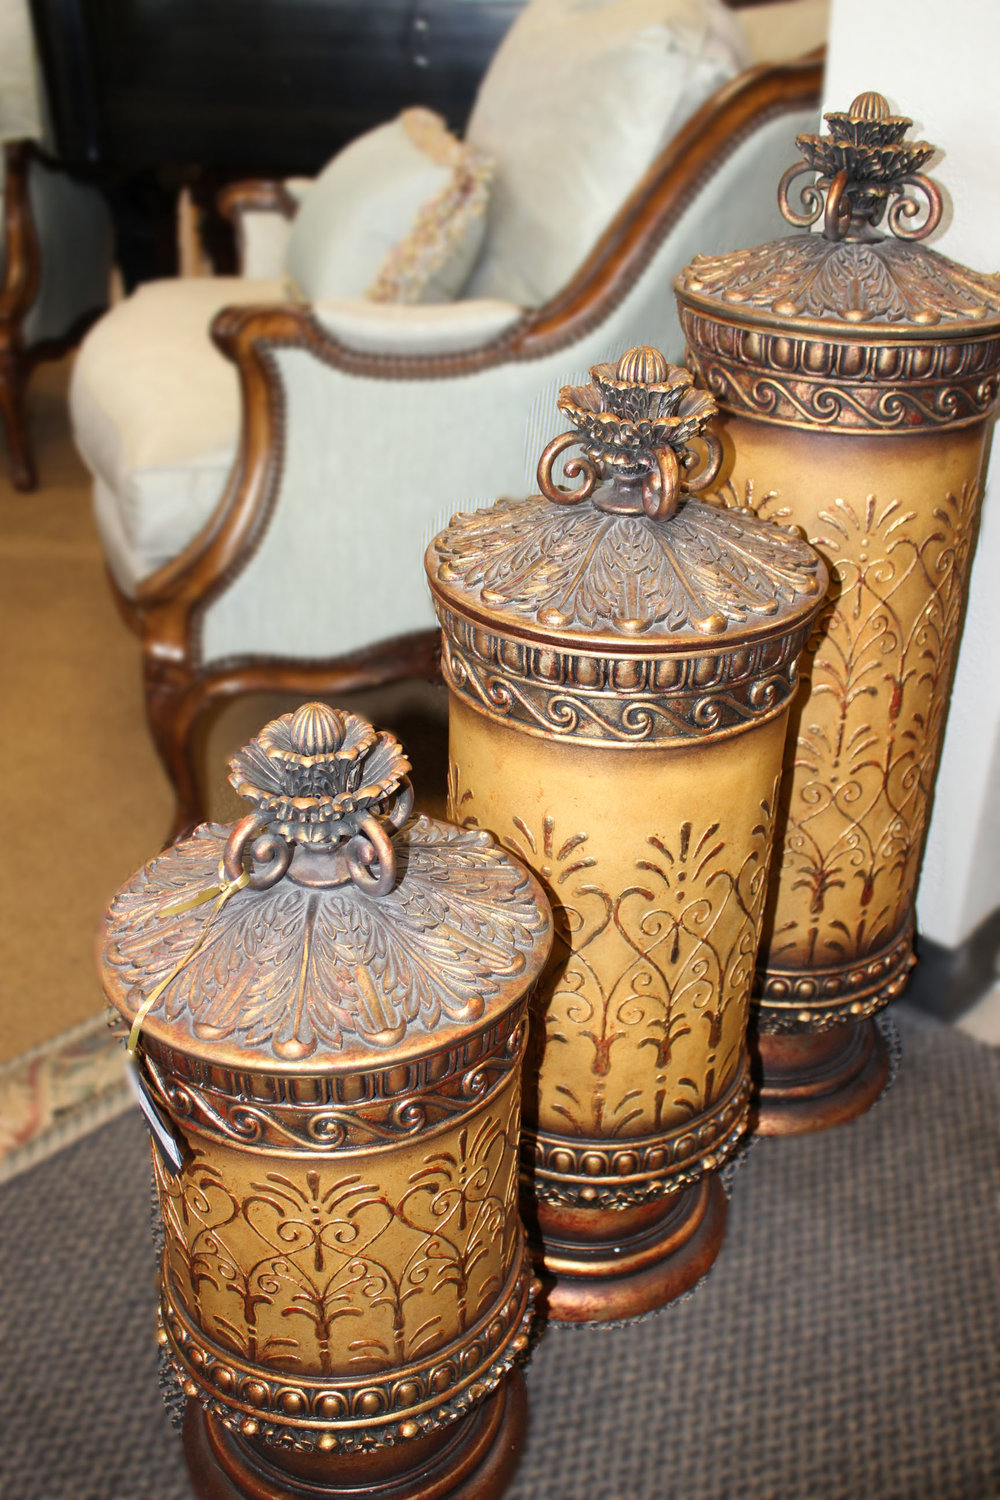 Set of 3 XL Gold Ornate Urns with Lids